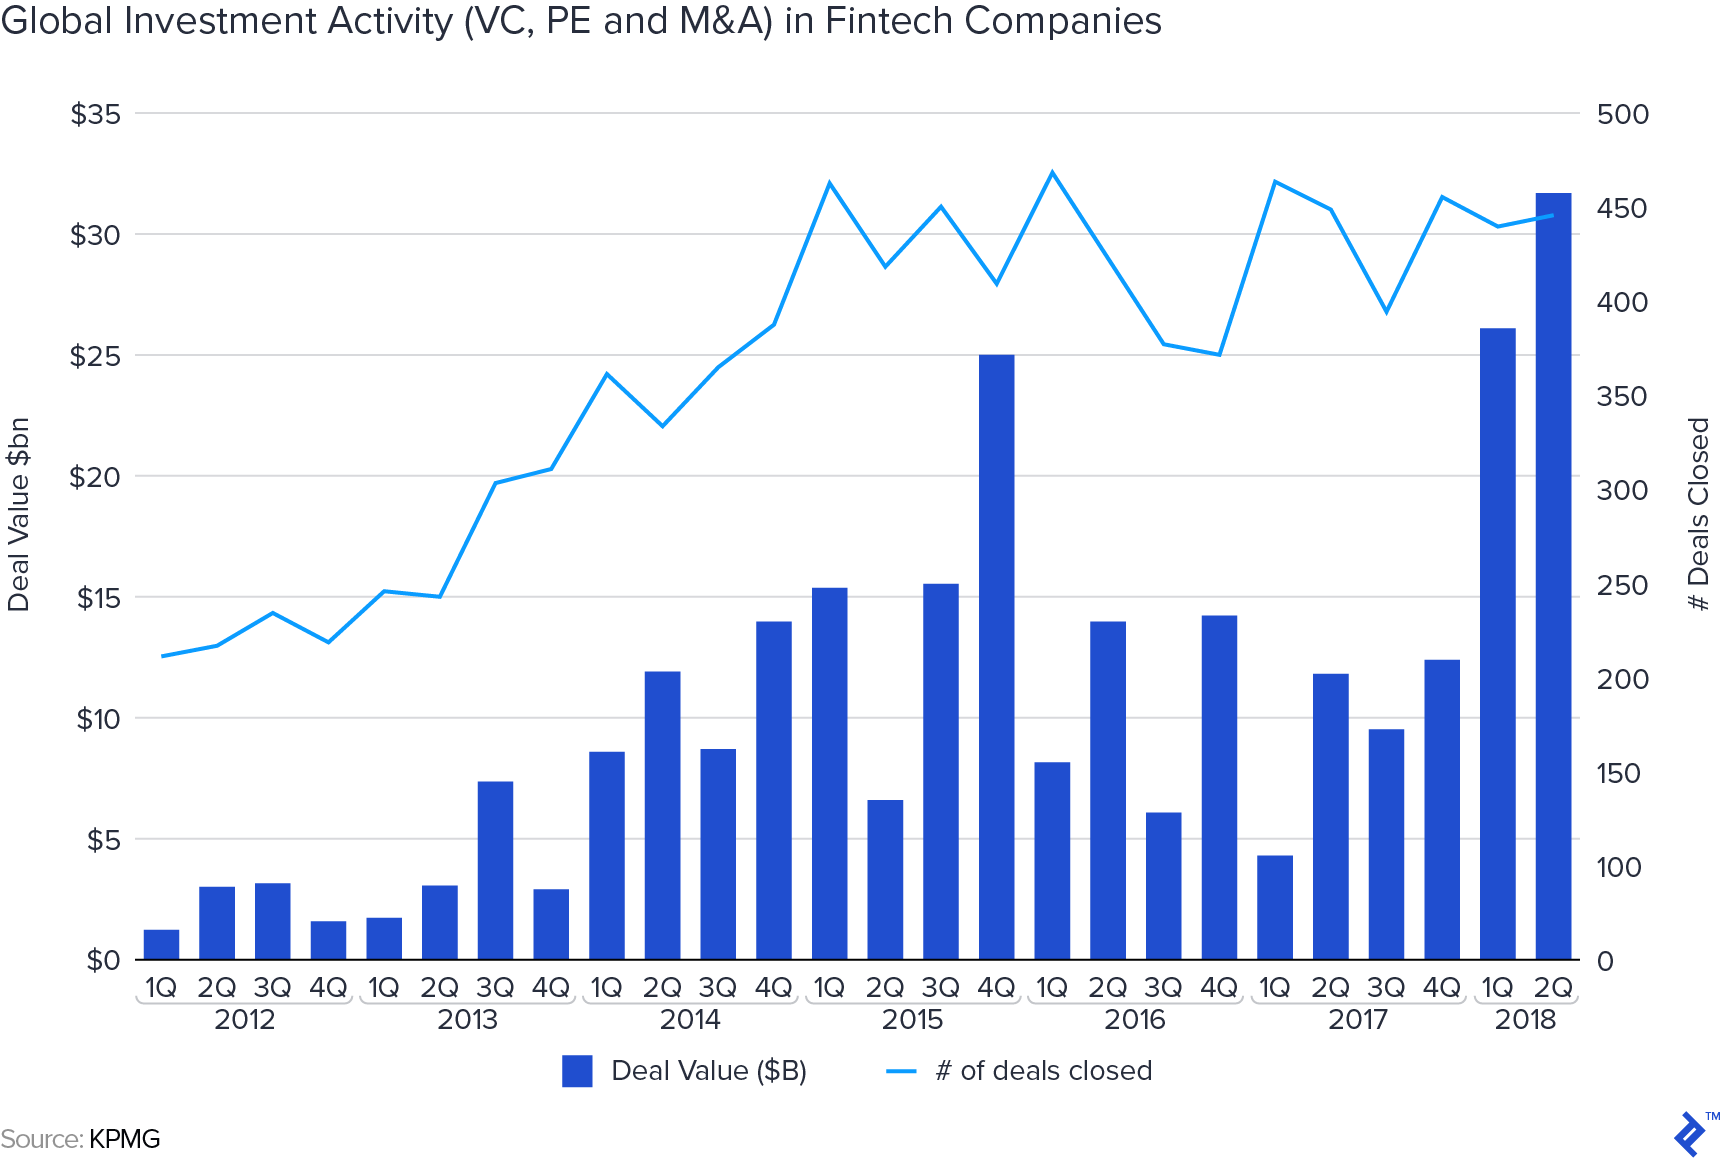 Global investment activity in fintech companies.